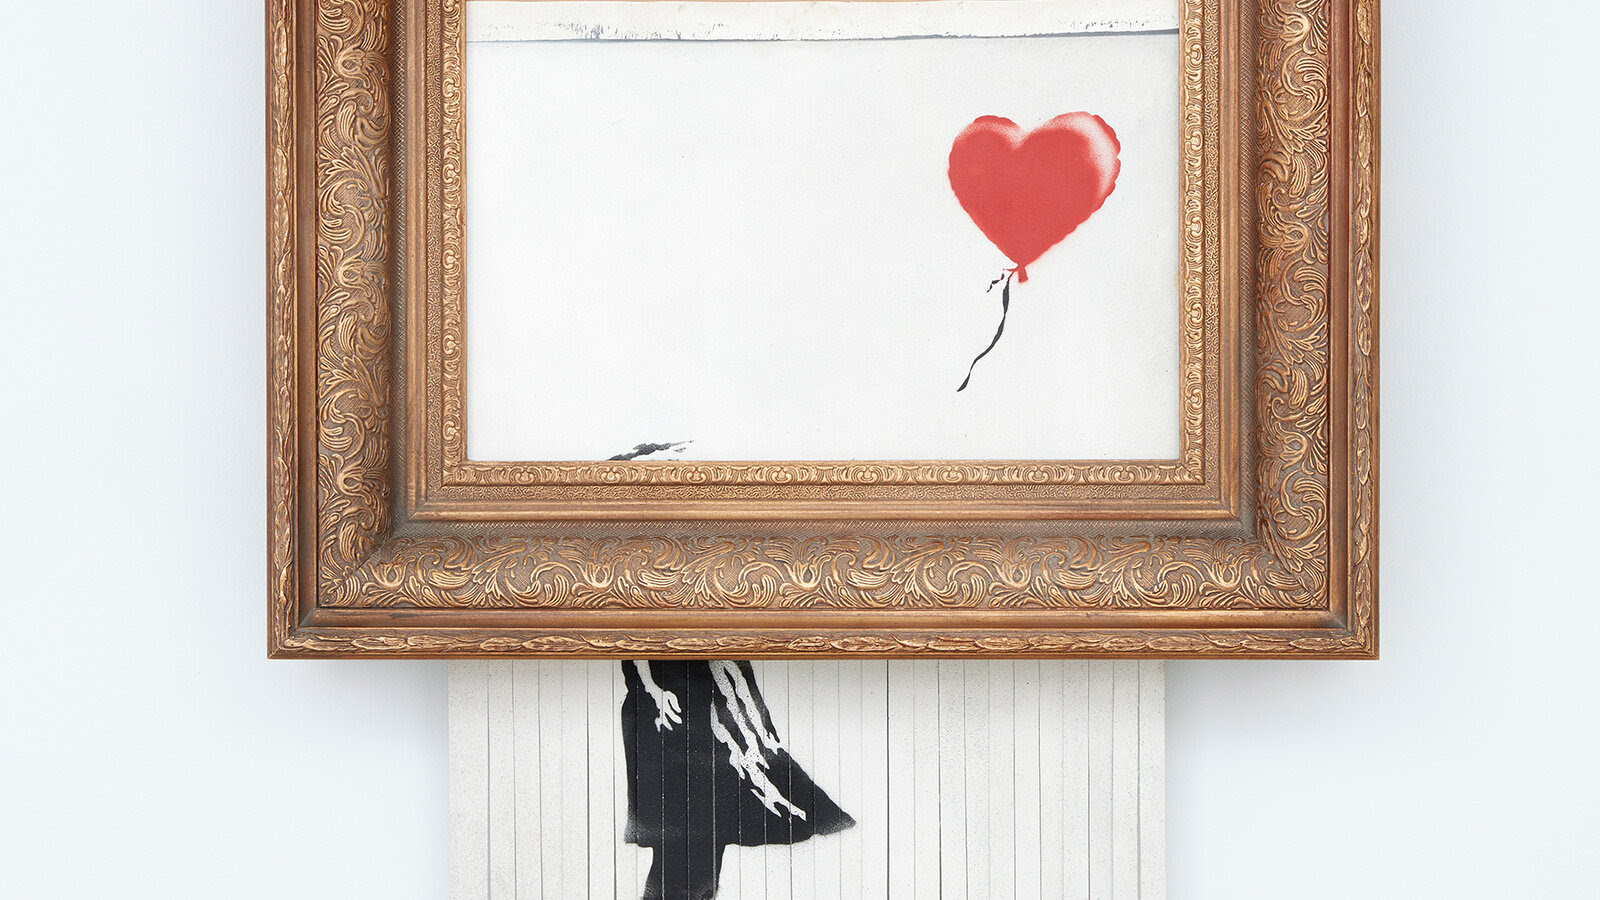 Banksy's Shredding Artwork Is Auctioned for $25.4 Million at Sotheby's